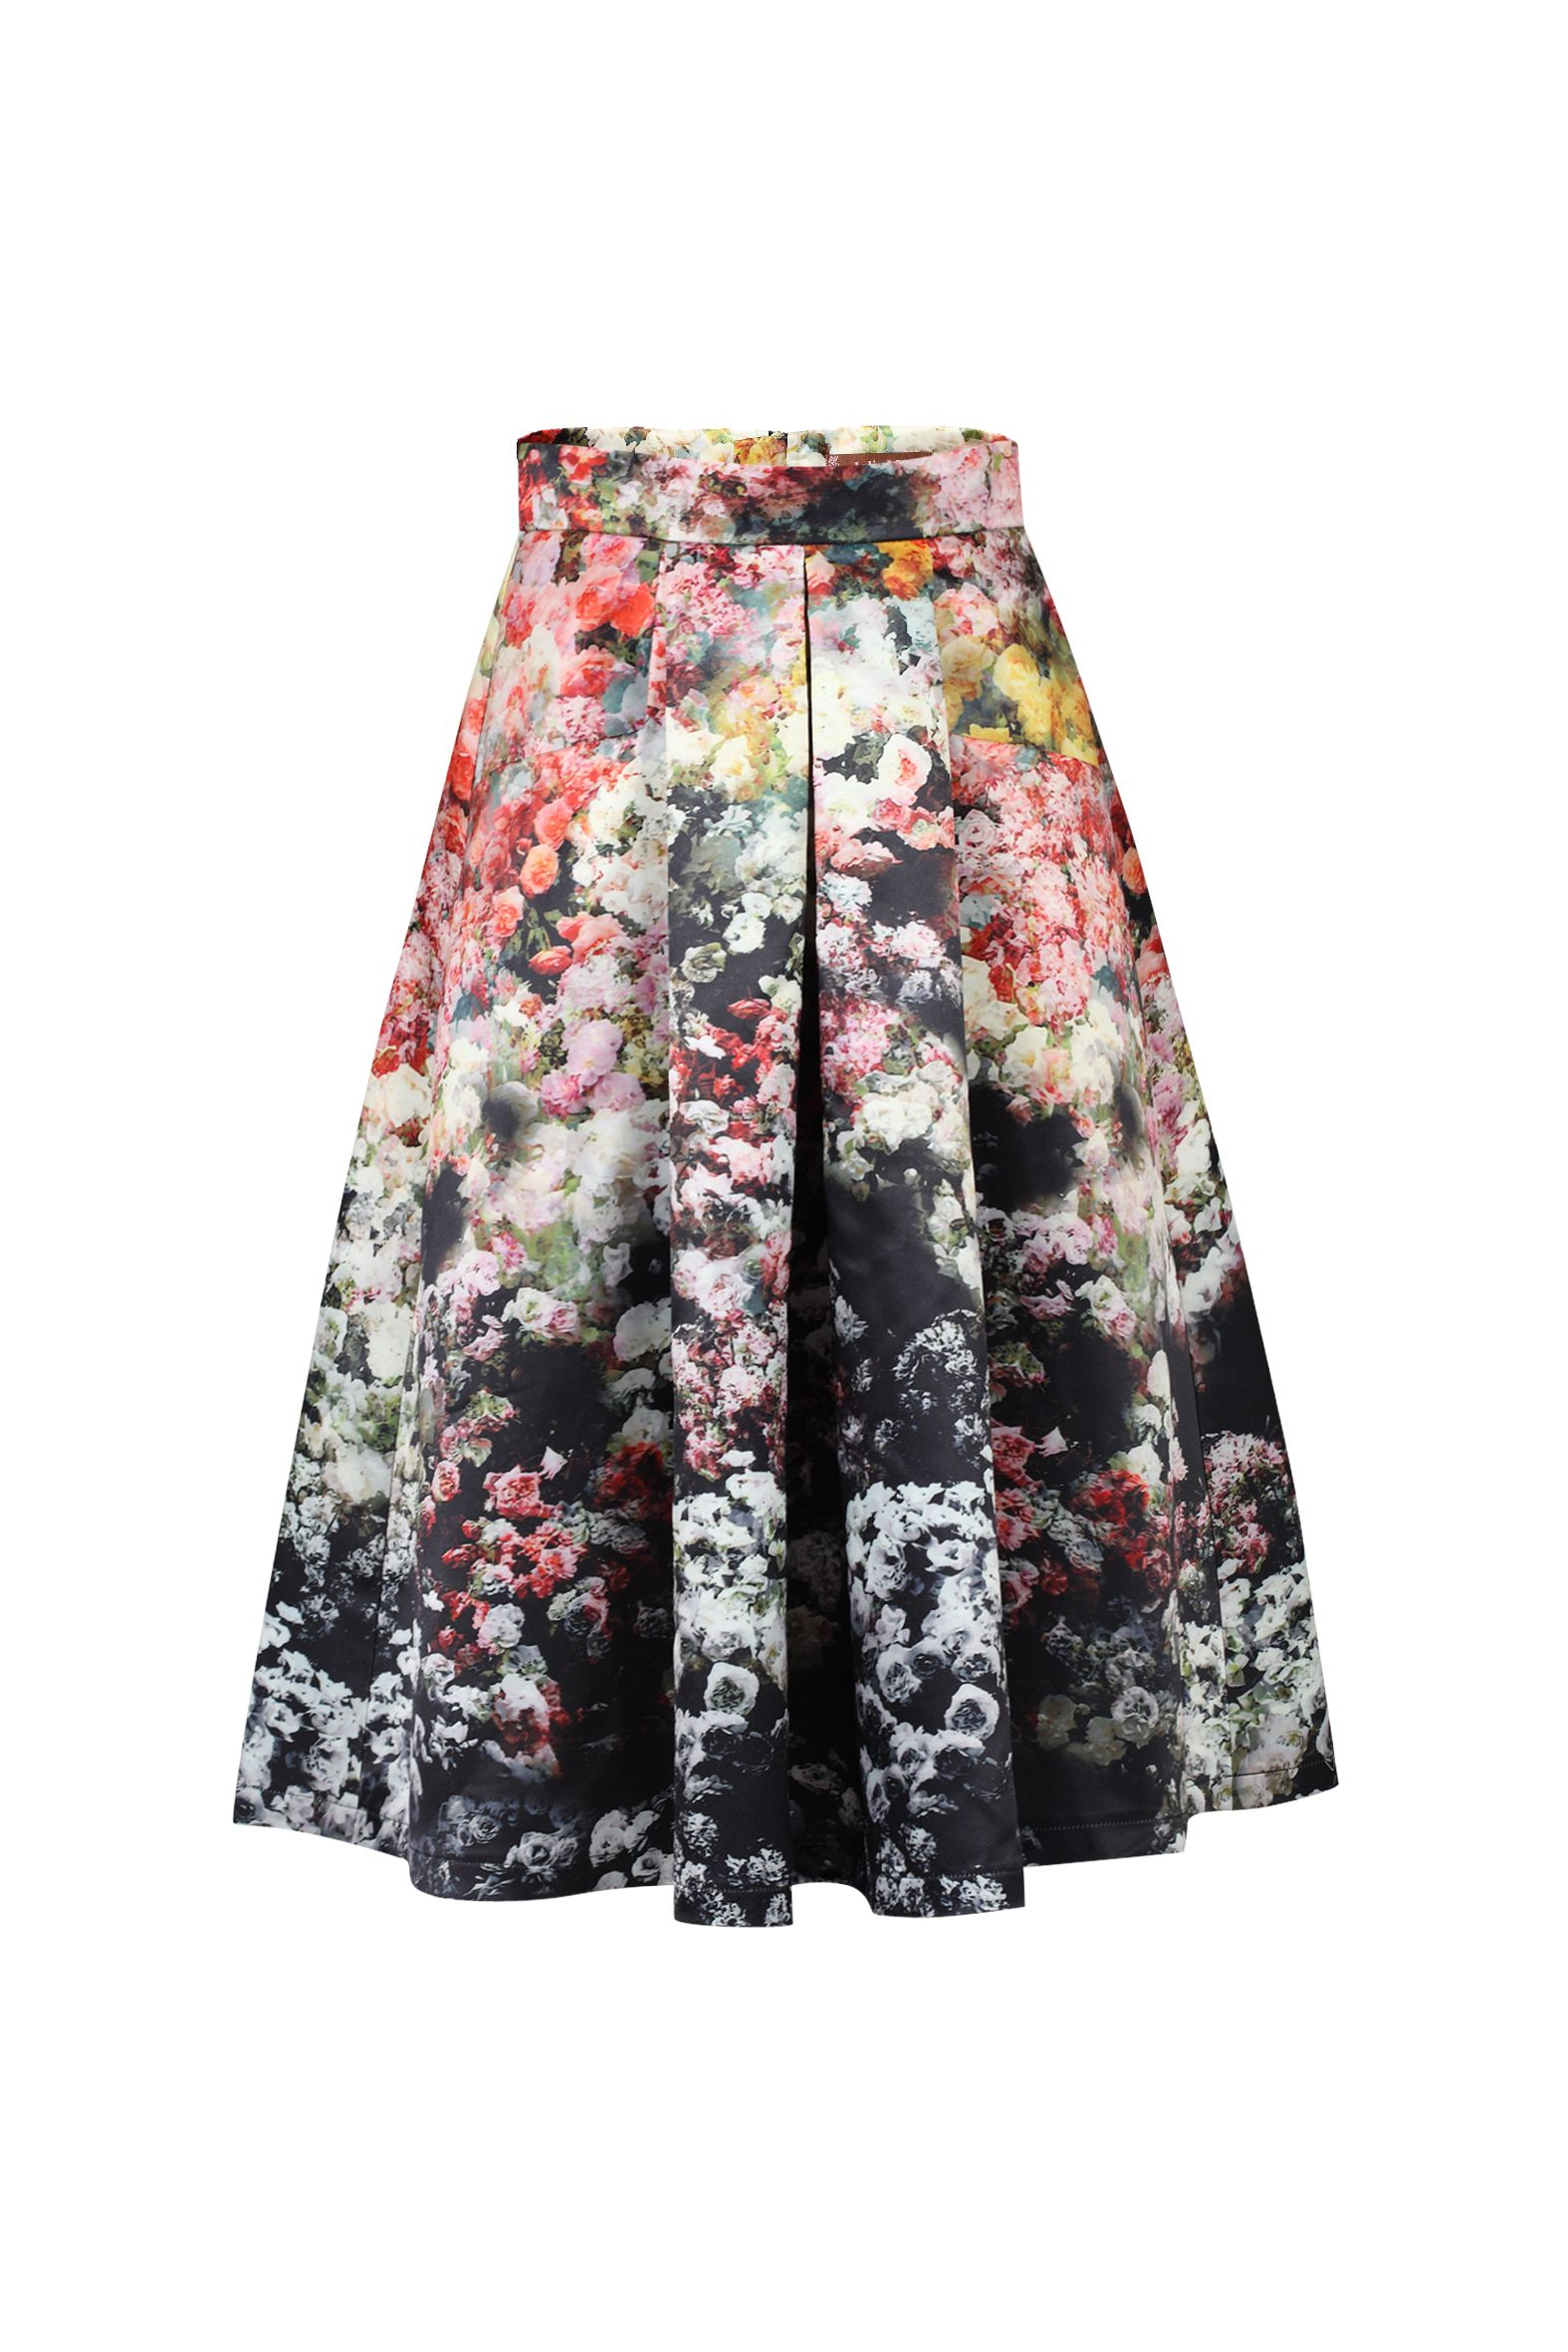 Jolie Moi Floral Print A-line Midi Skirt, Multi-Coloured